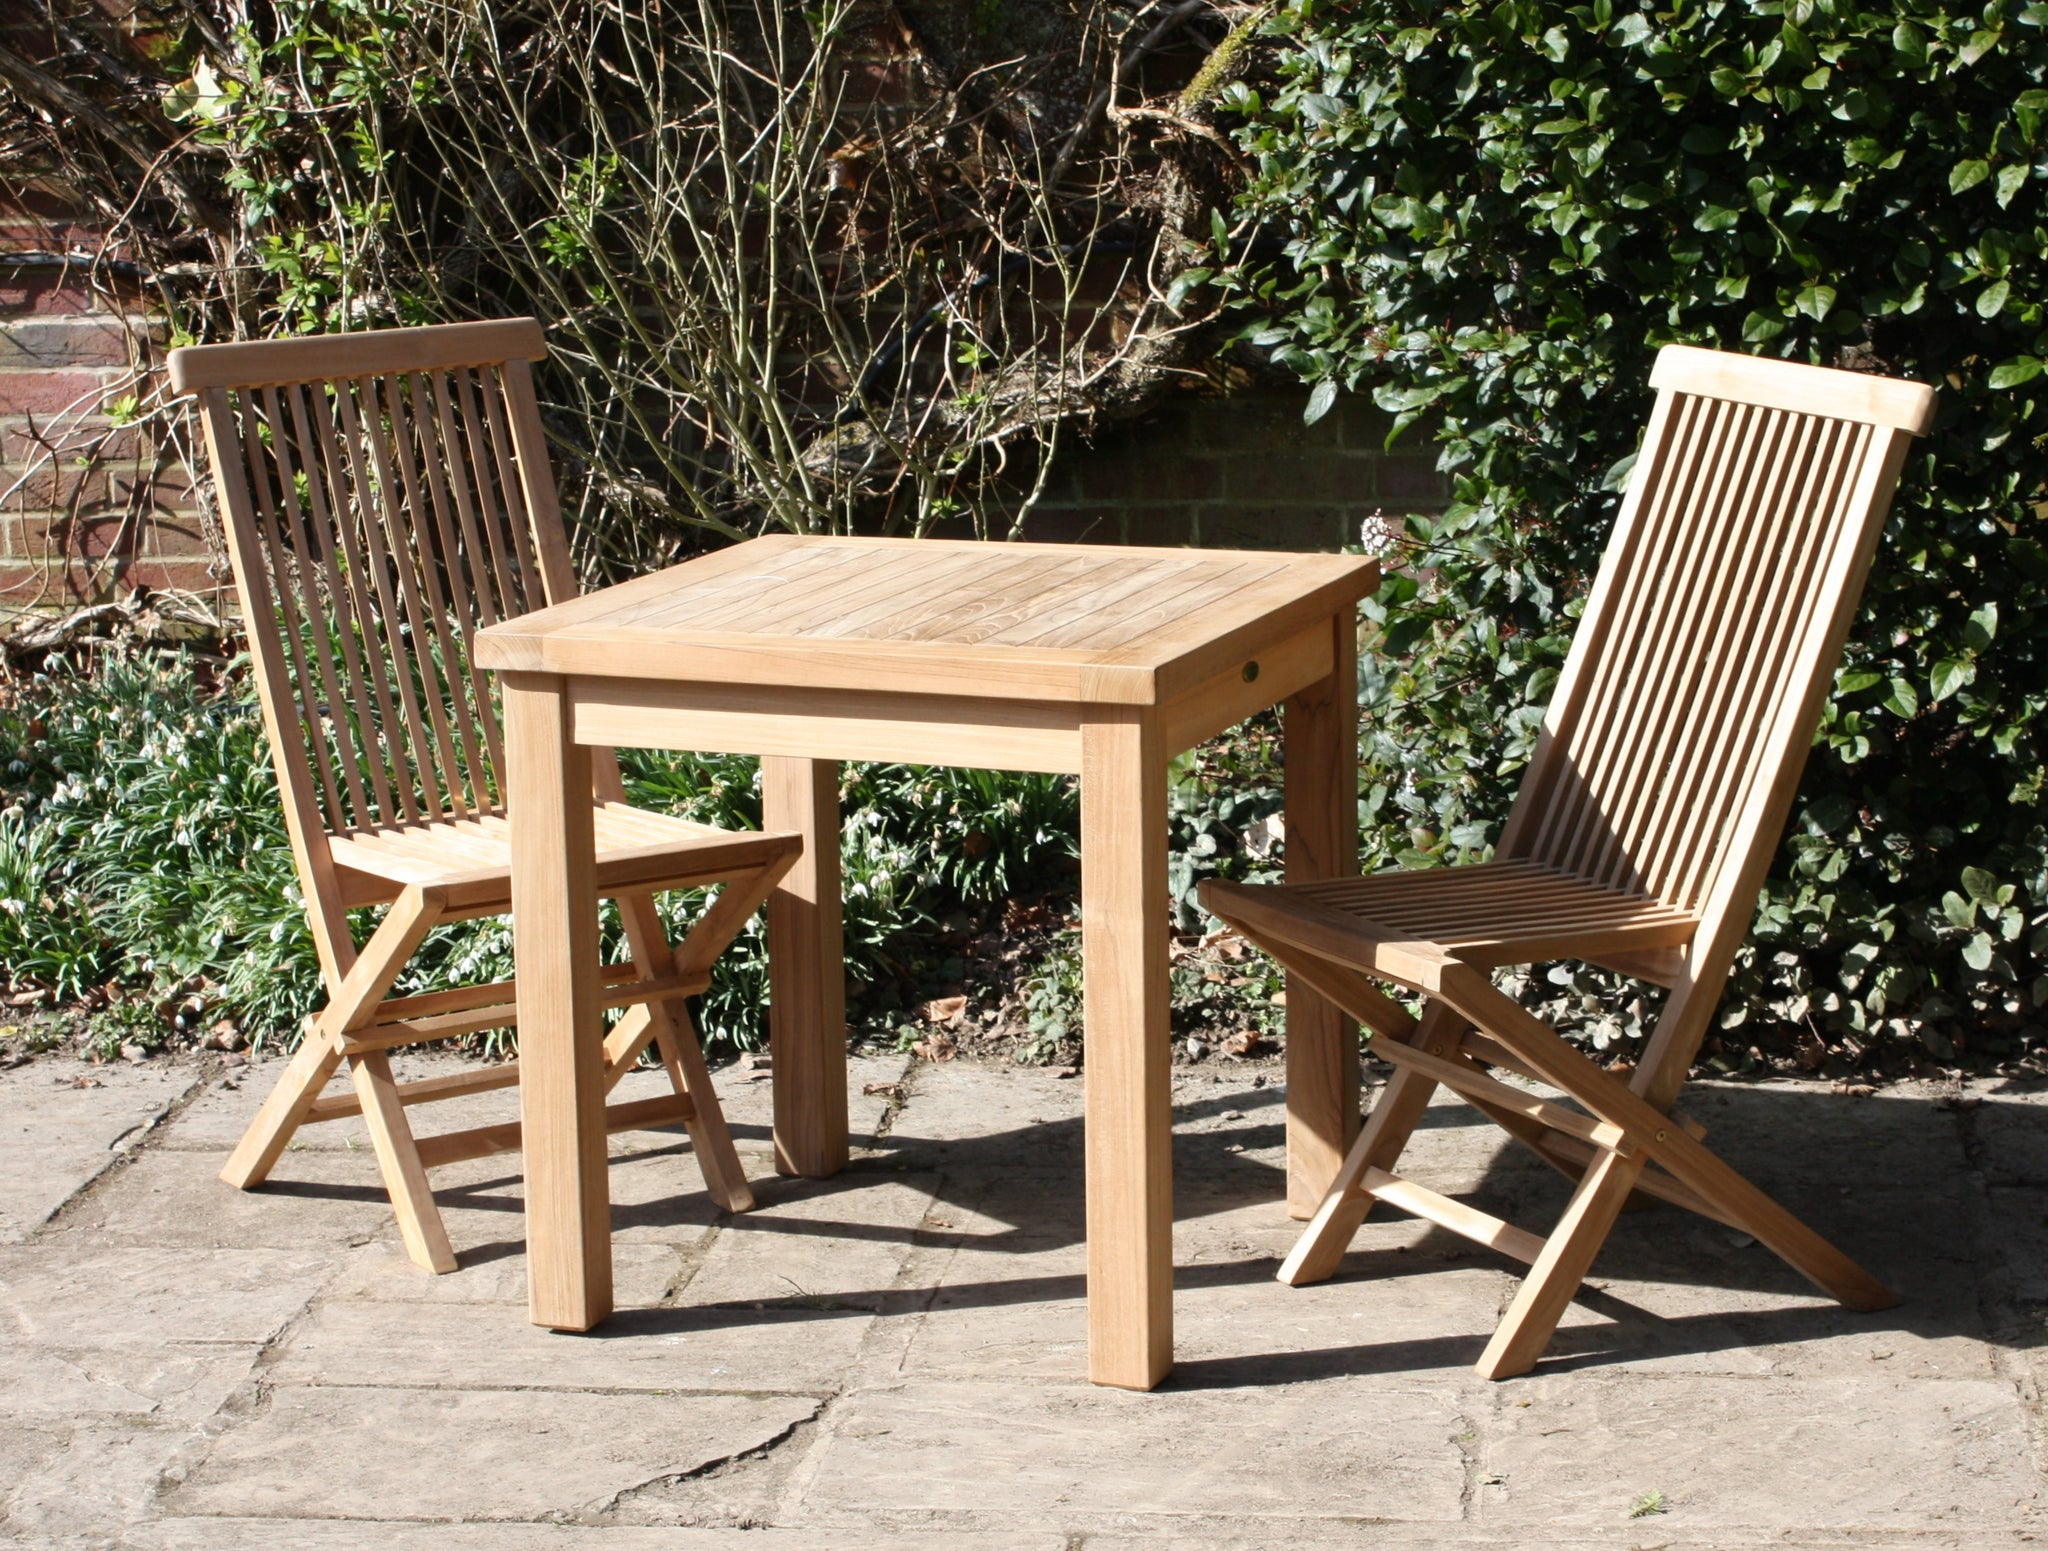 Square garden teak table & chairs